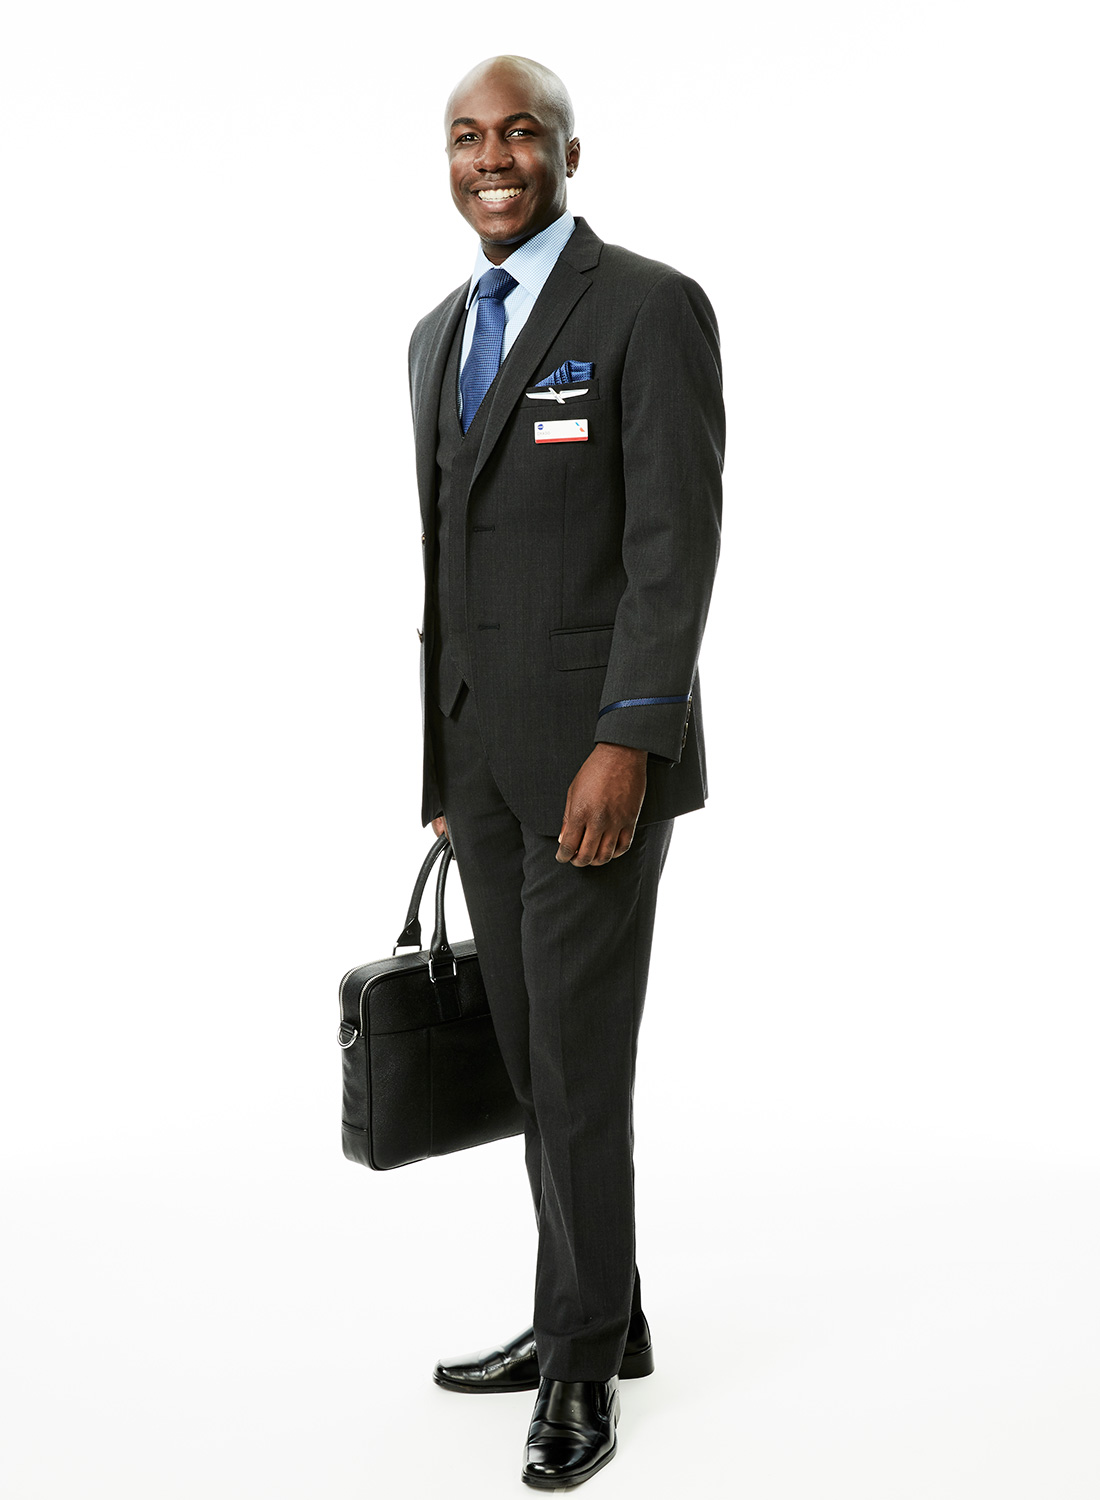 160920_AmericanAirlines_Portraits_By_BriJohnson_0002.jpg